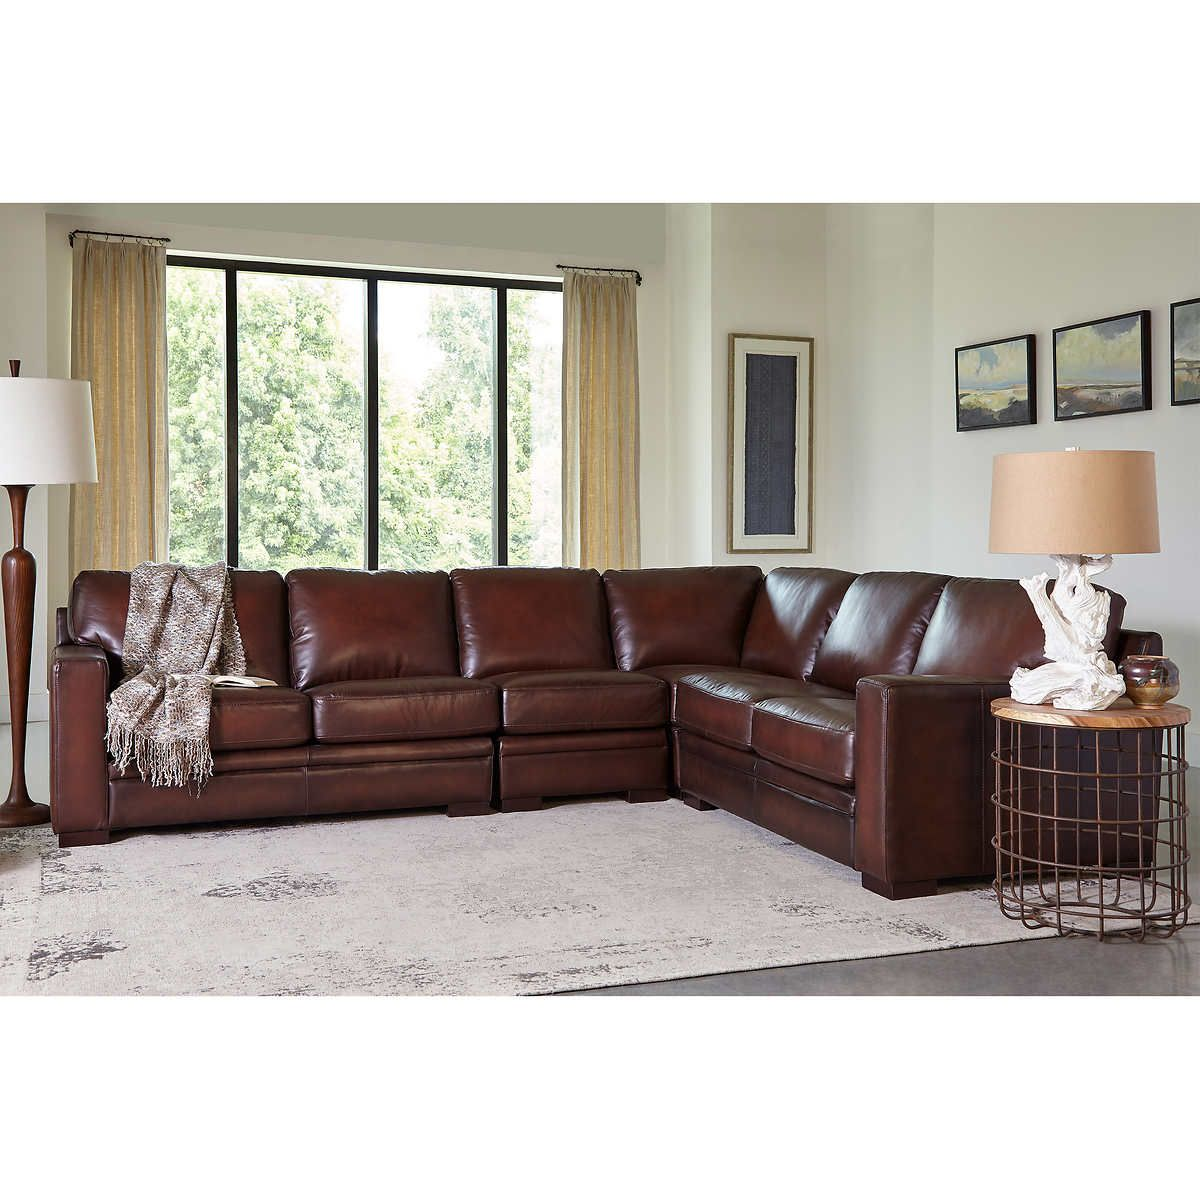 Luca 4 Piece Top Grain Leather Sectional Top Grain Leather Sectional Leather Sectional Leather Sectional Sofas